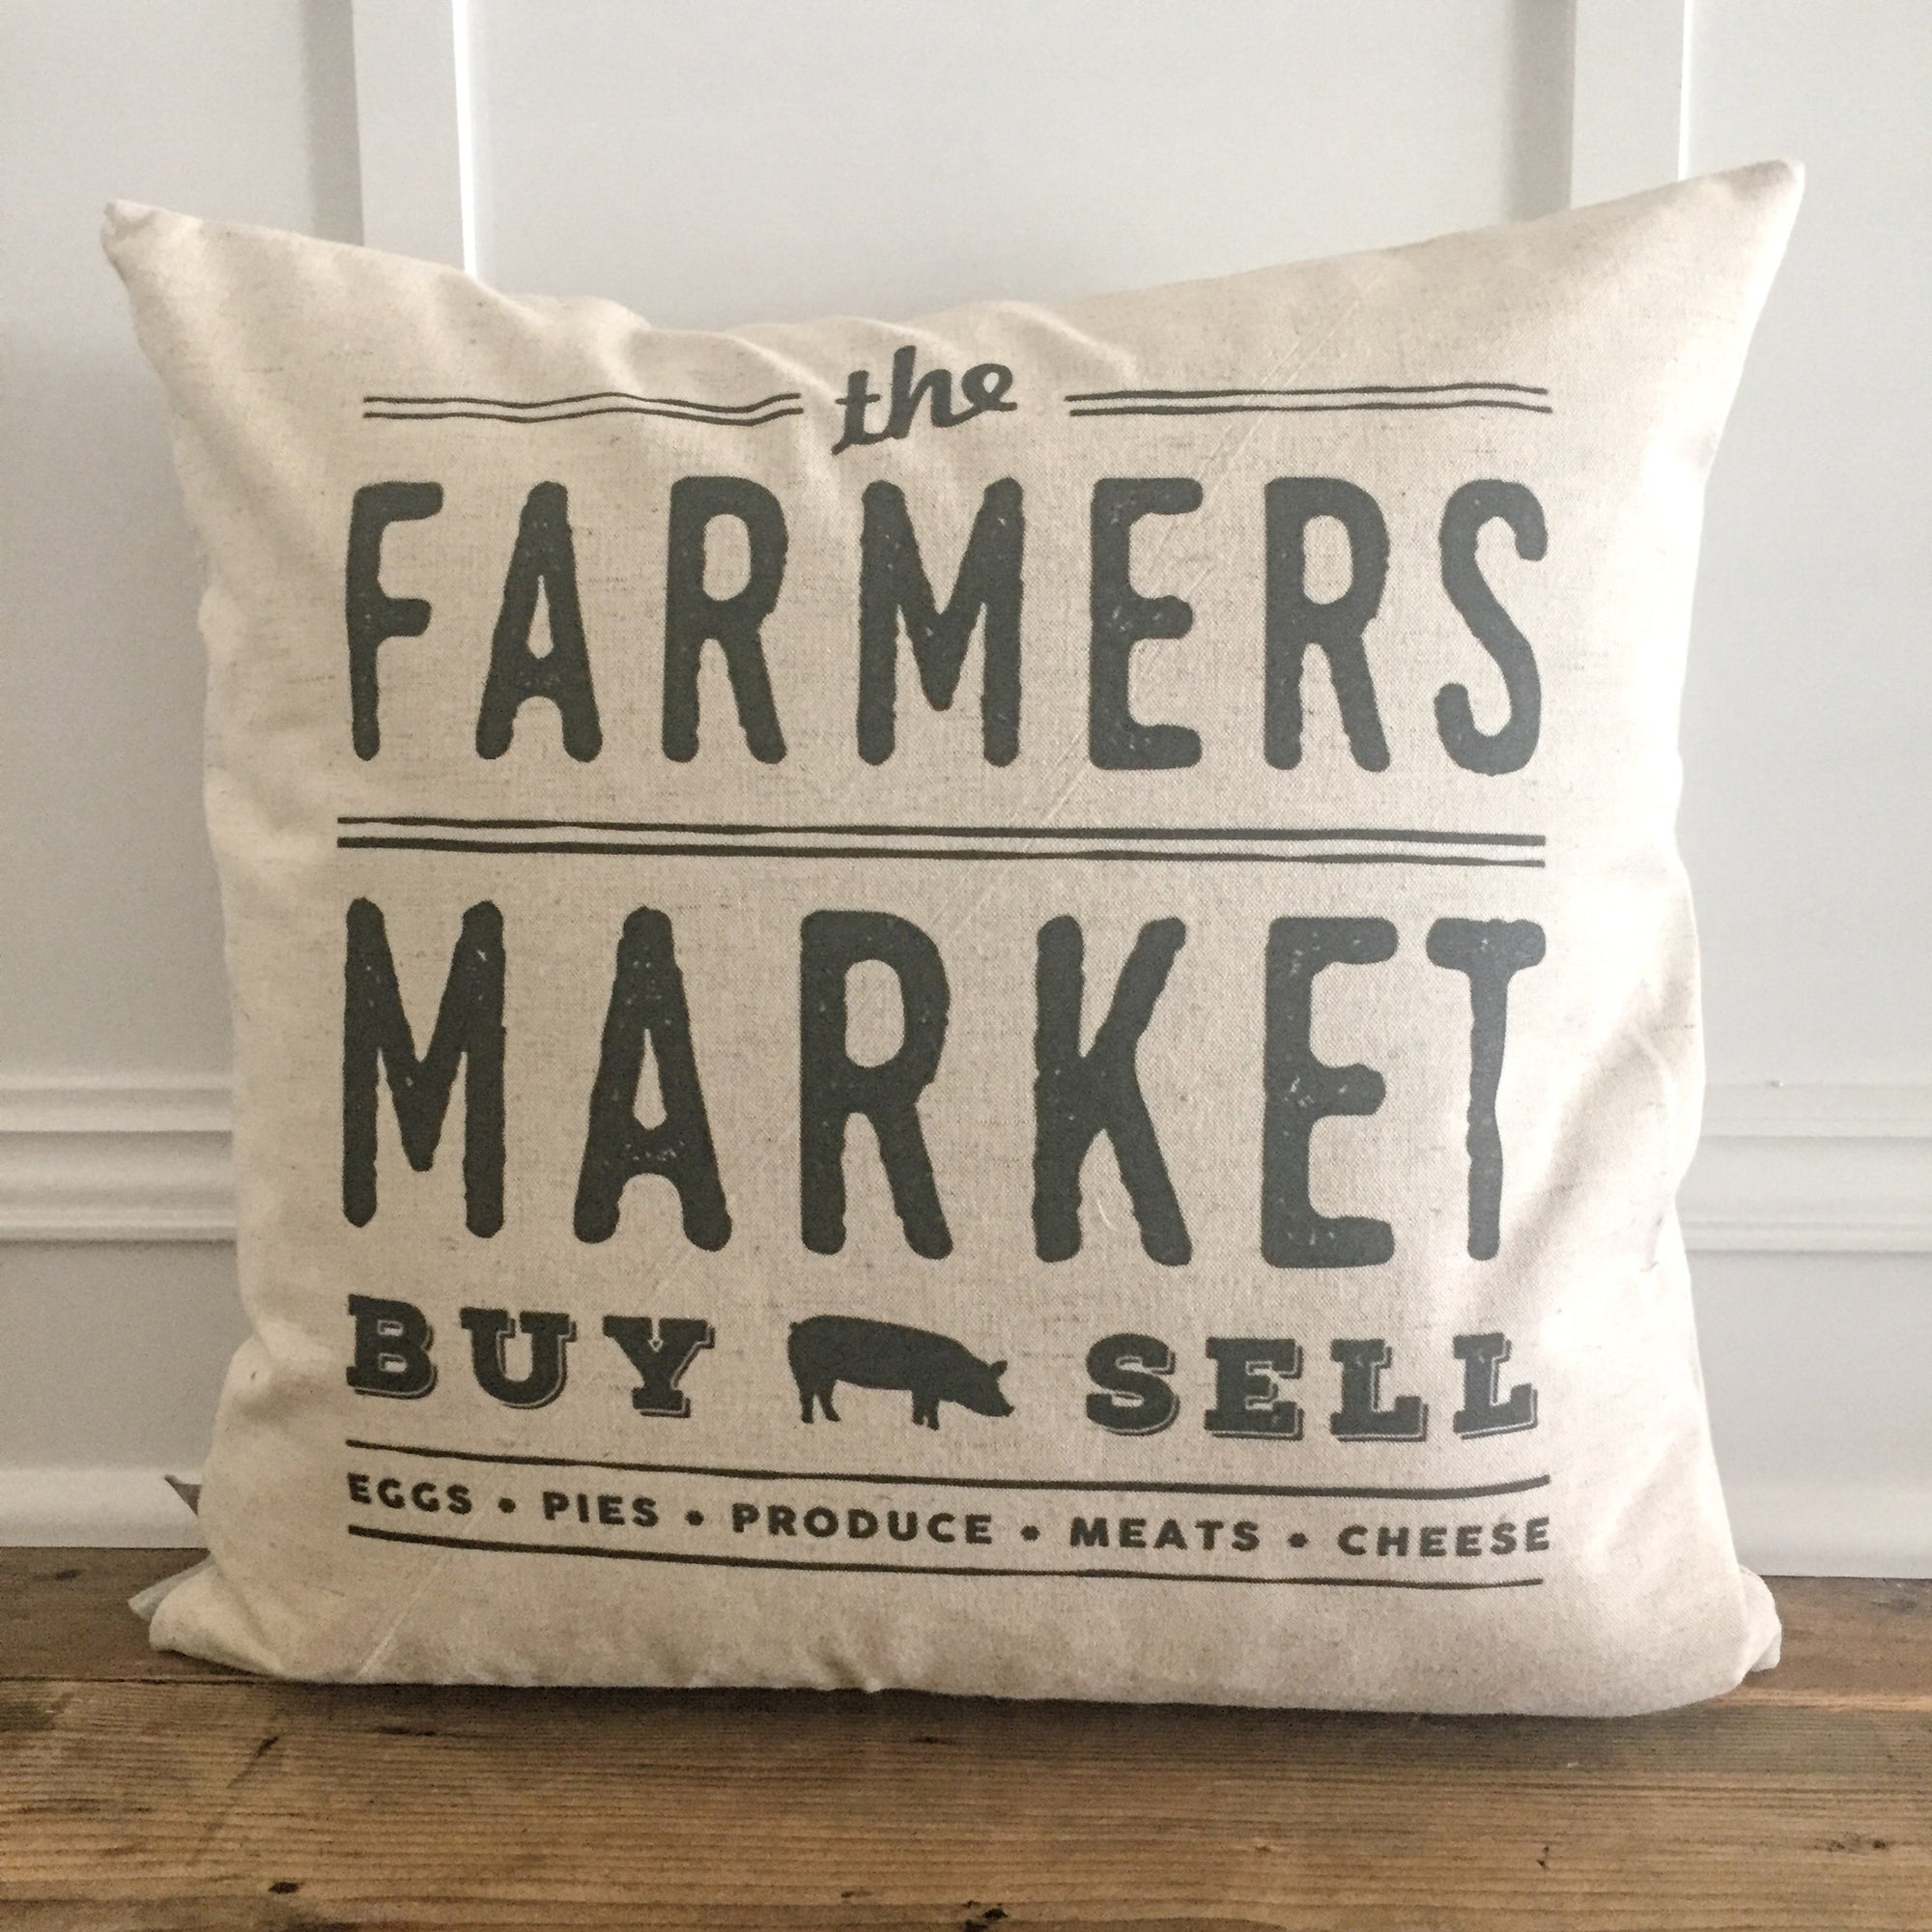 Farmer's Market Buy/Sell Pillow Cover - Linen and Ivory